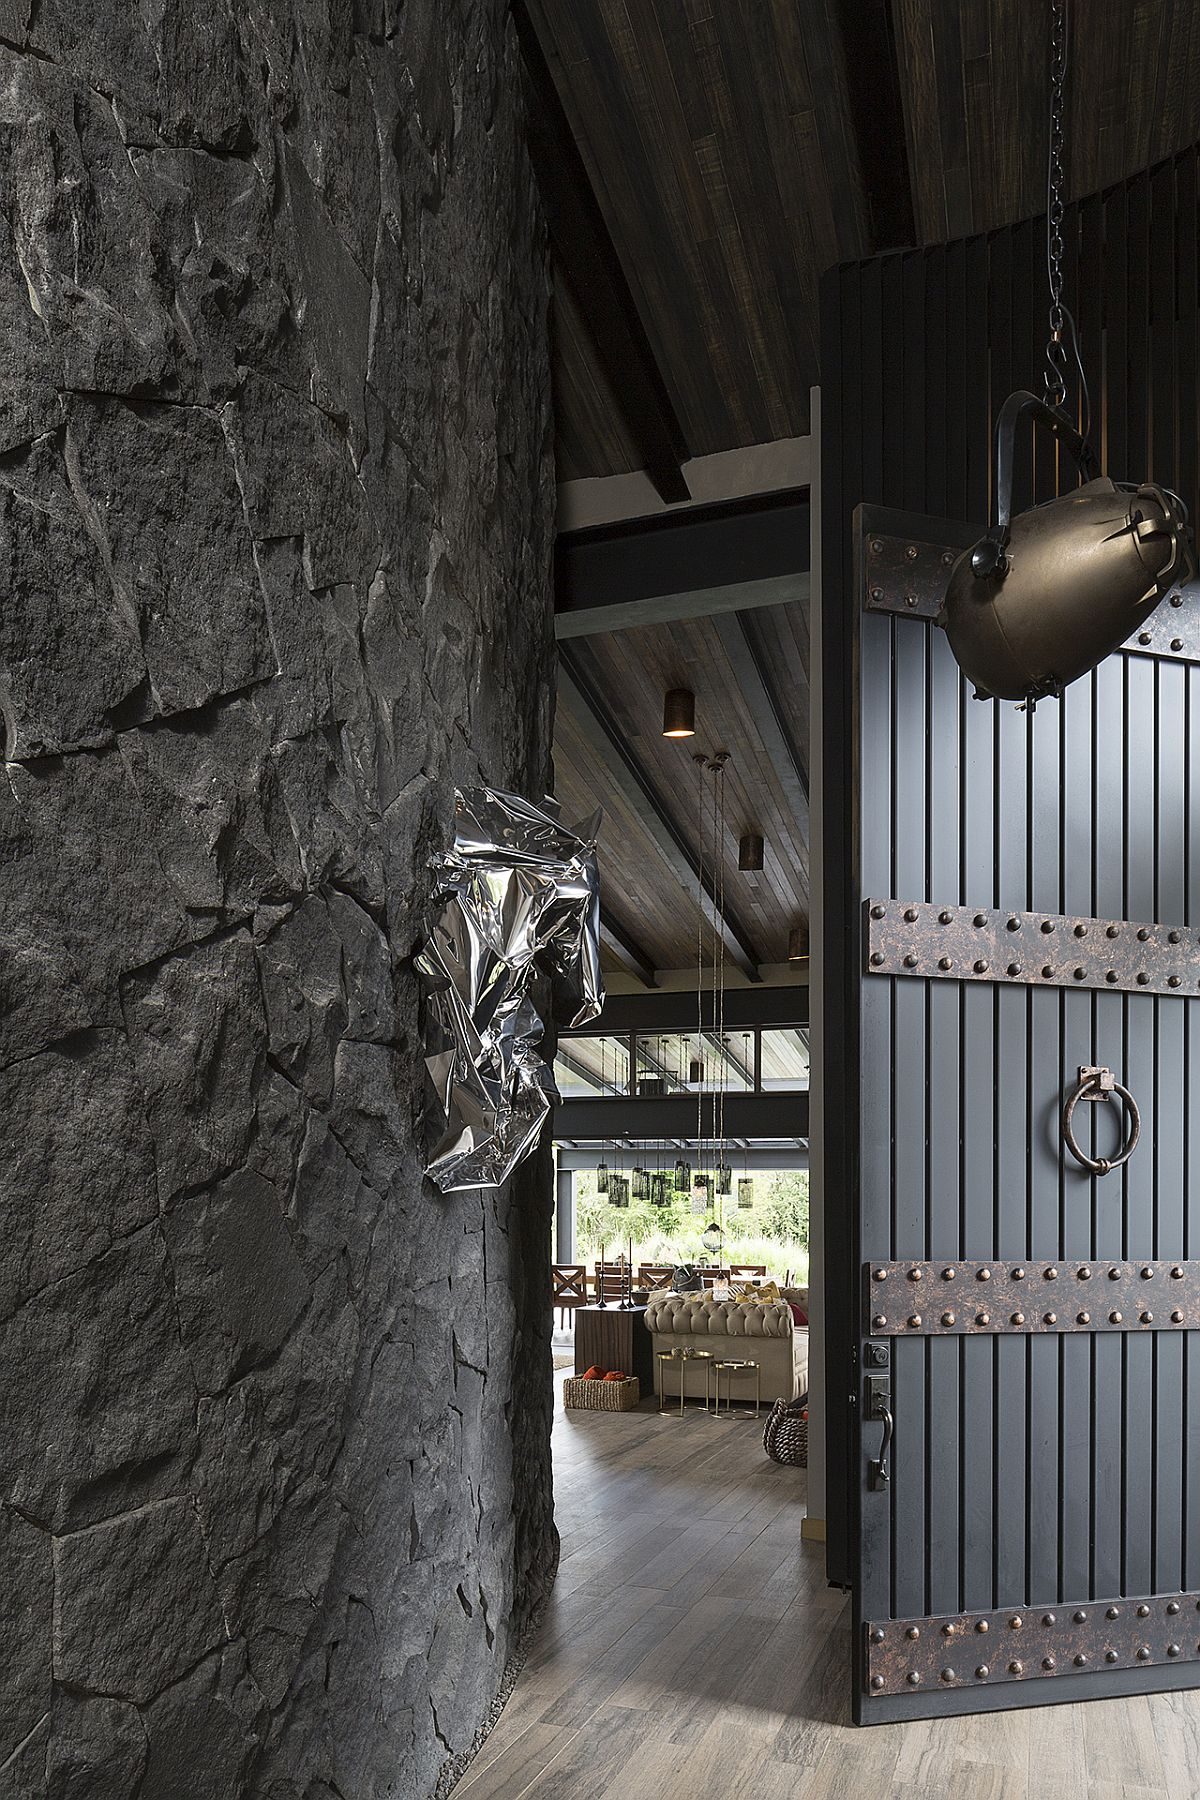 Entrance-of-the-house-with-traditional-Mexican-design-touches-and-dark-stone-walls-42426